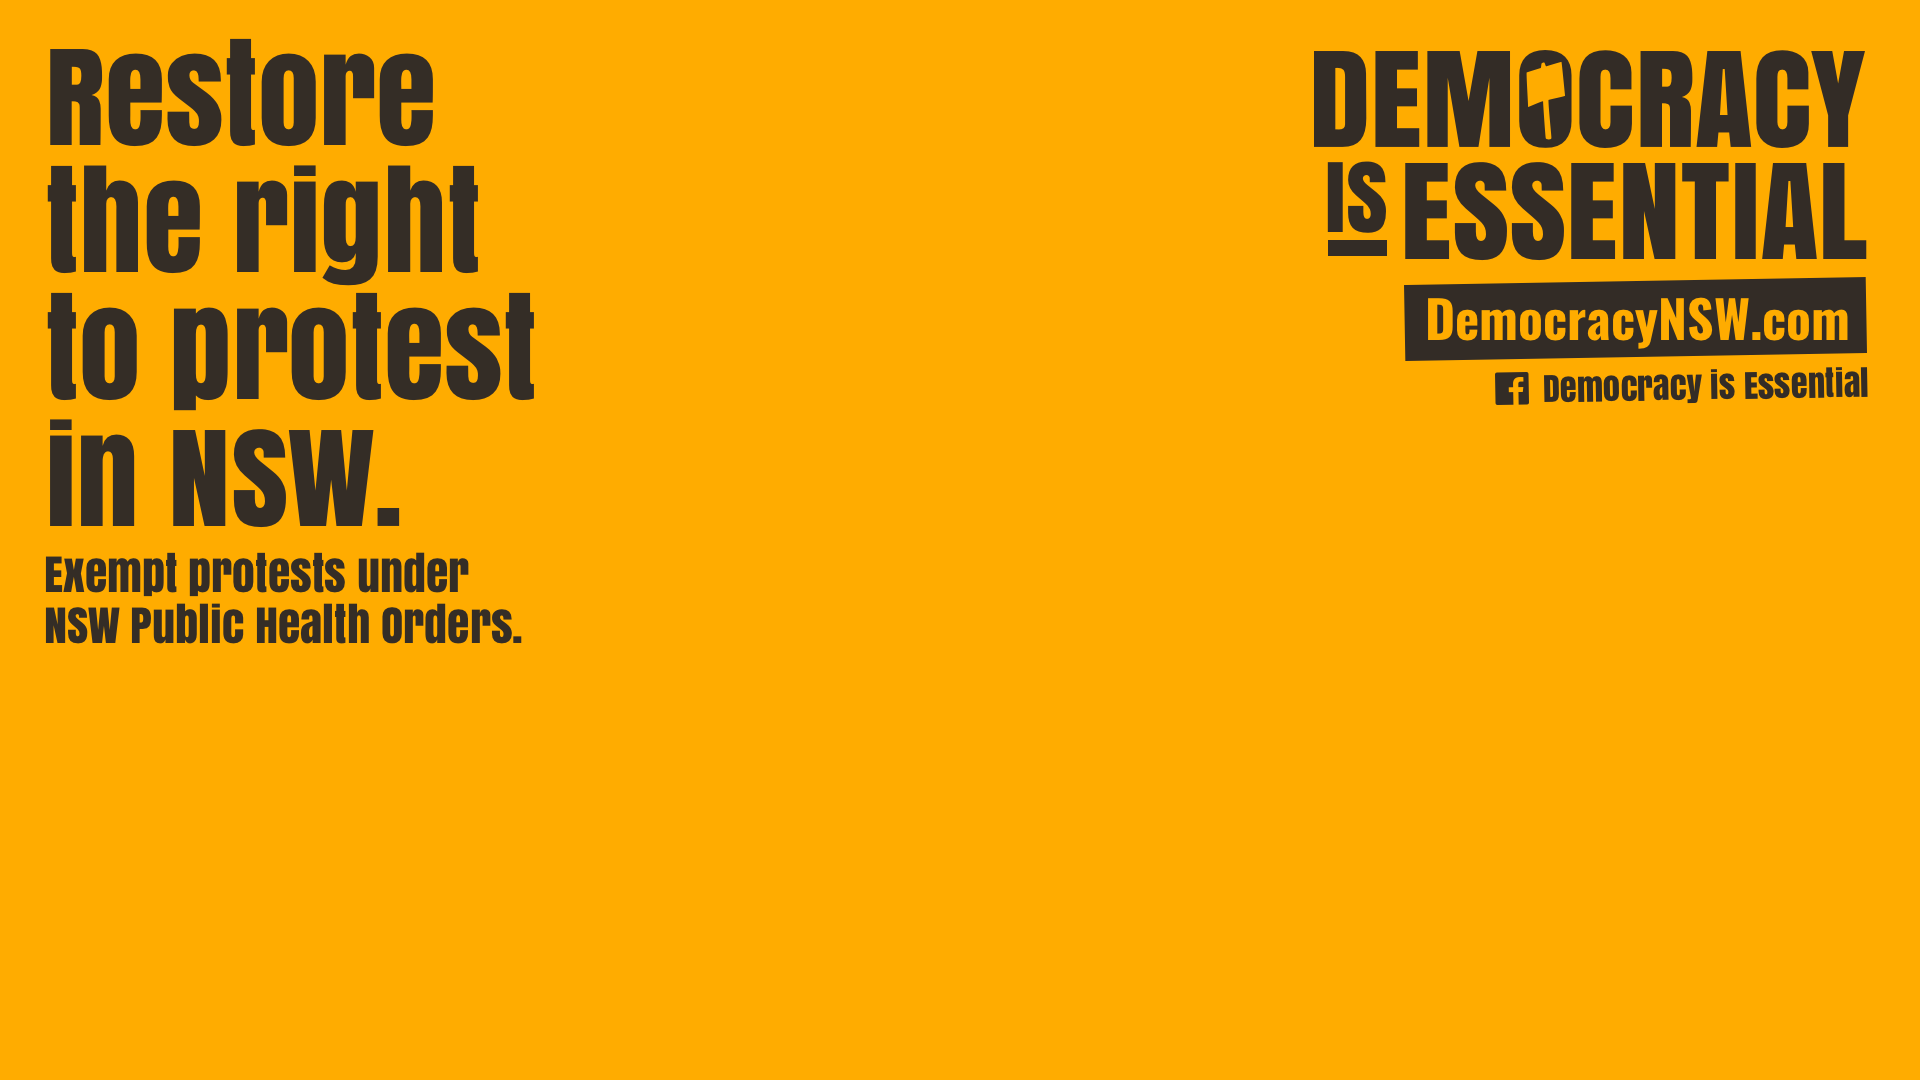 Restore the right to protest poster: Democracy is Essential